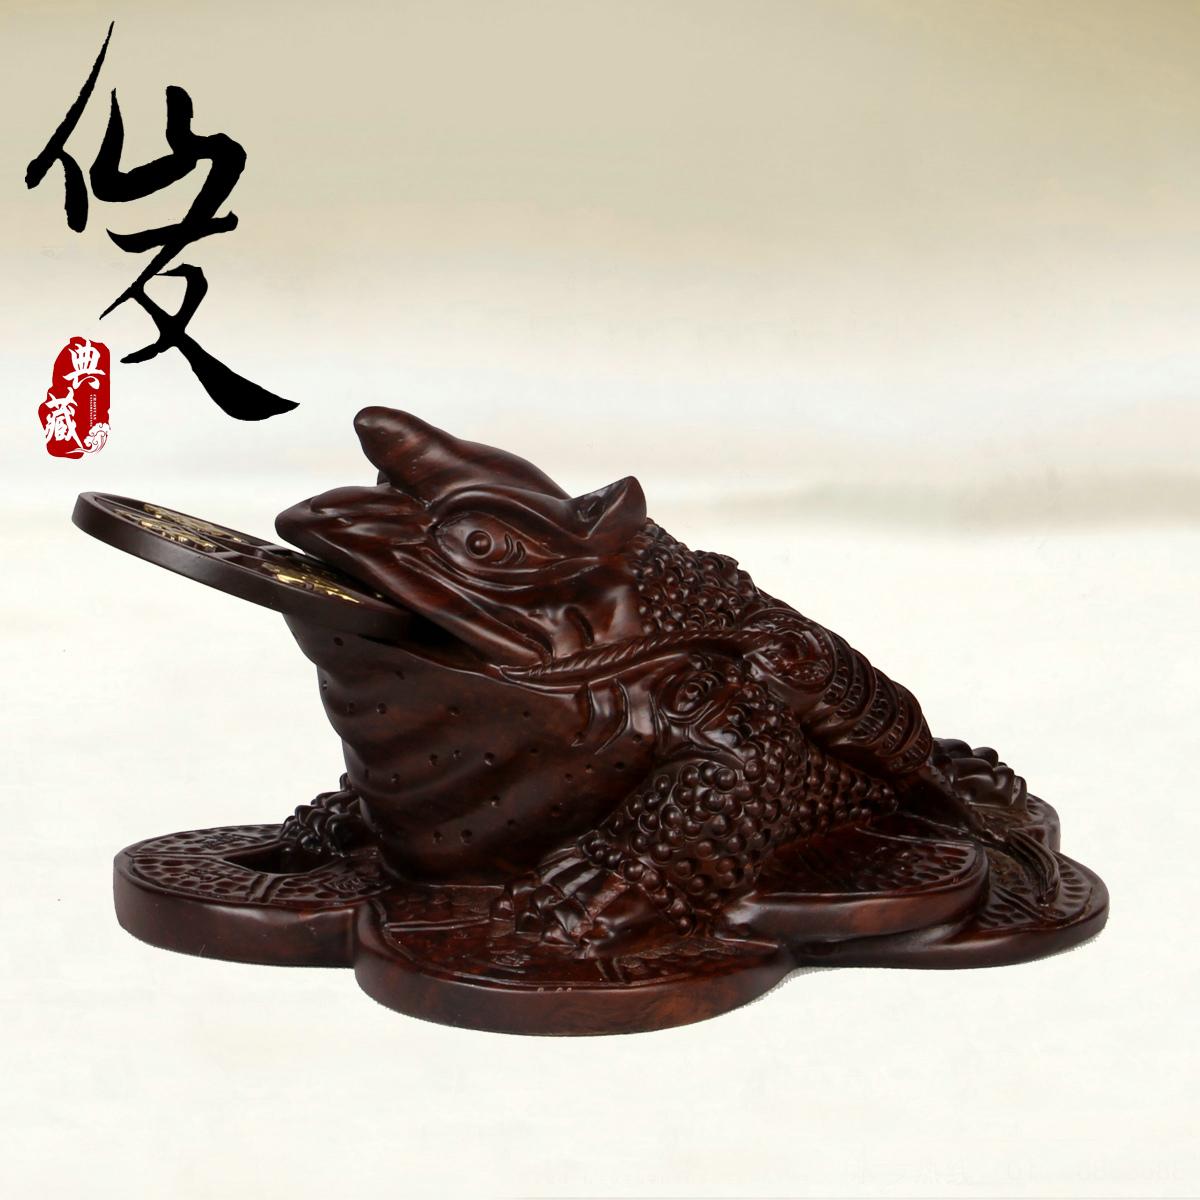 Ebony wood crafts ornaments golden toad fortune lucky cai feng shui home office furnishings decoration